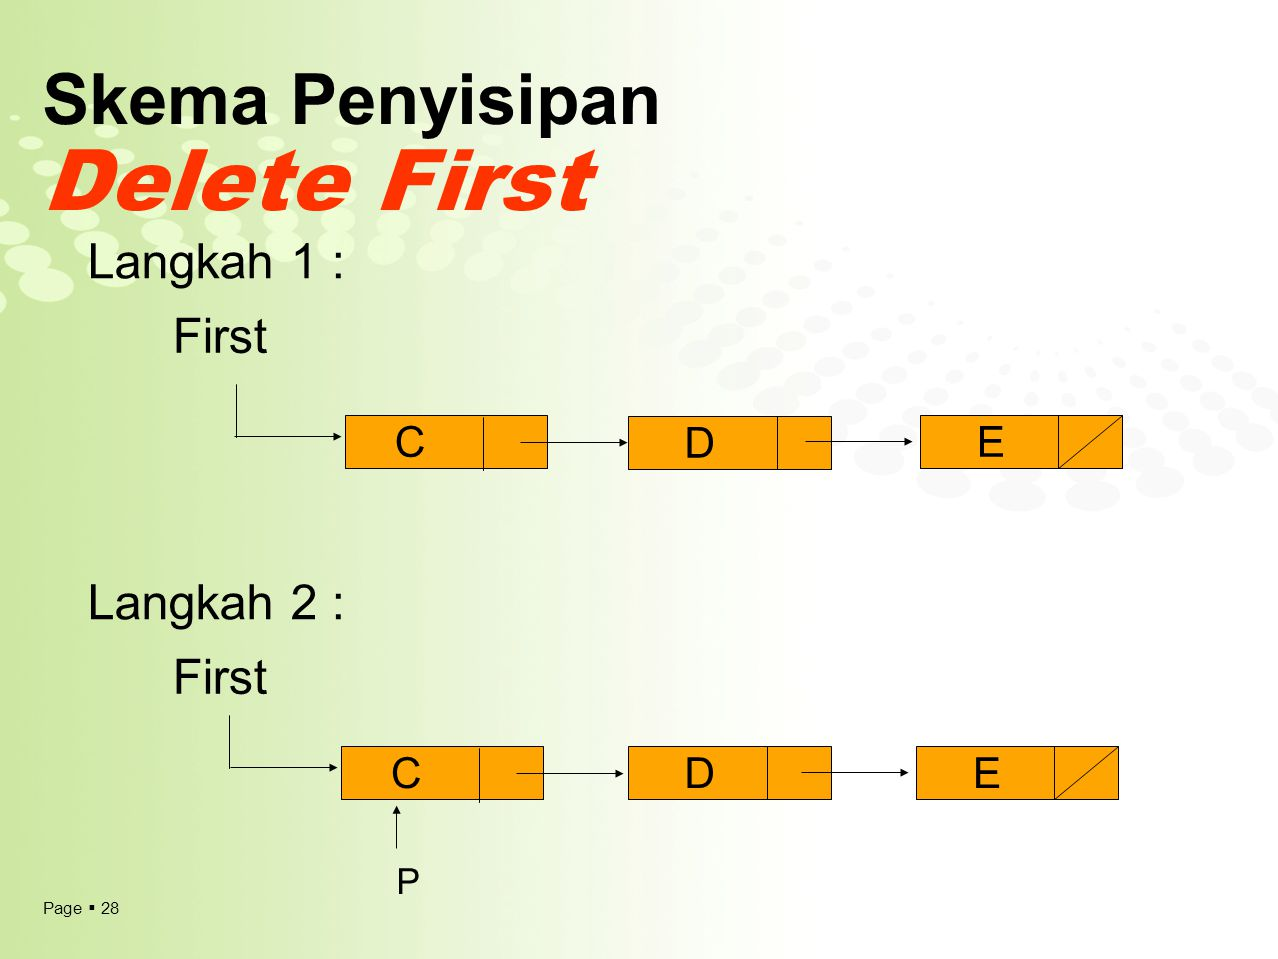 Skema Penyisipan Delete First